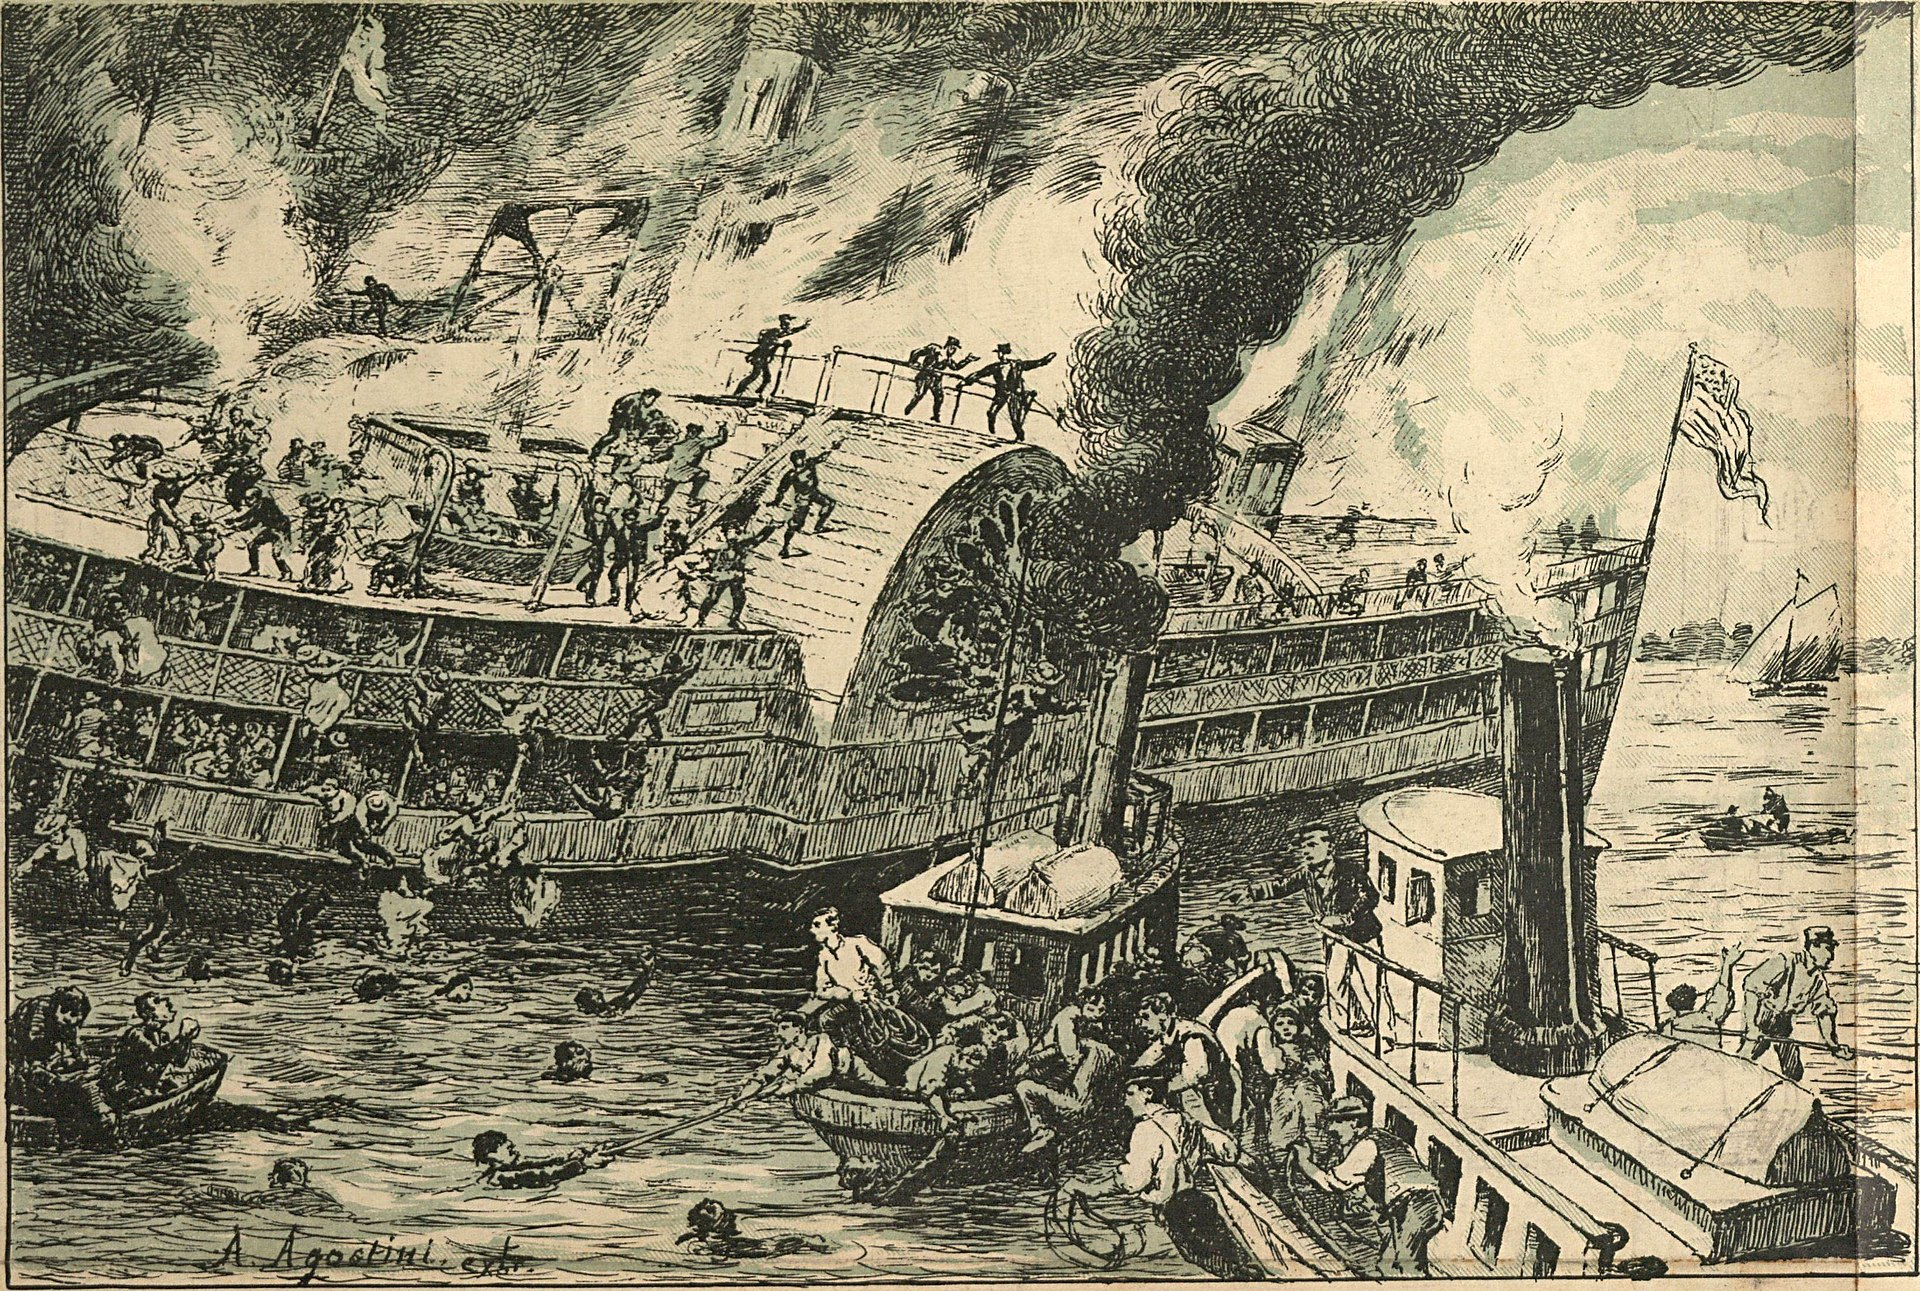 The great catastroph of the passenger steamboat General Slocum (Angelo Agostini, O Malho, 1904).